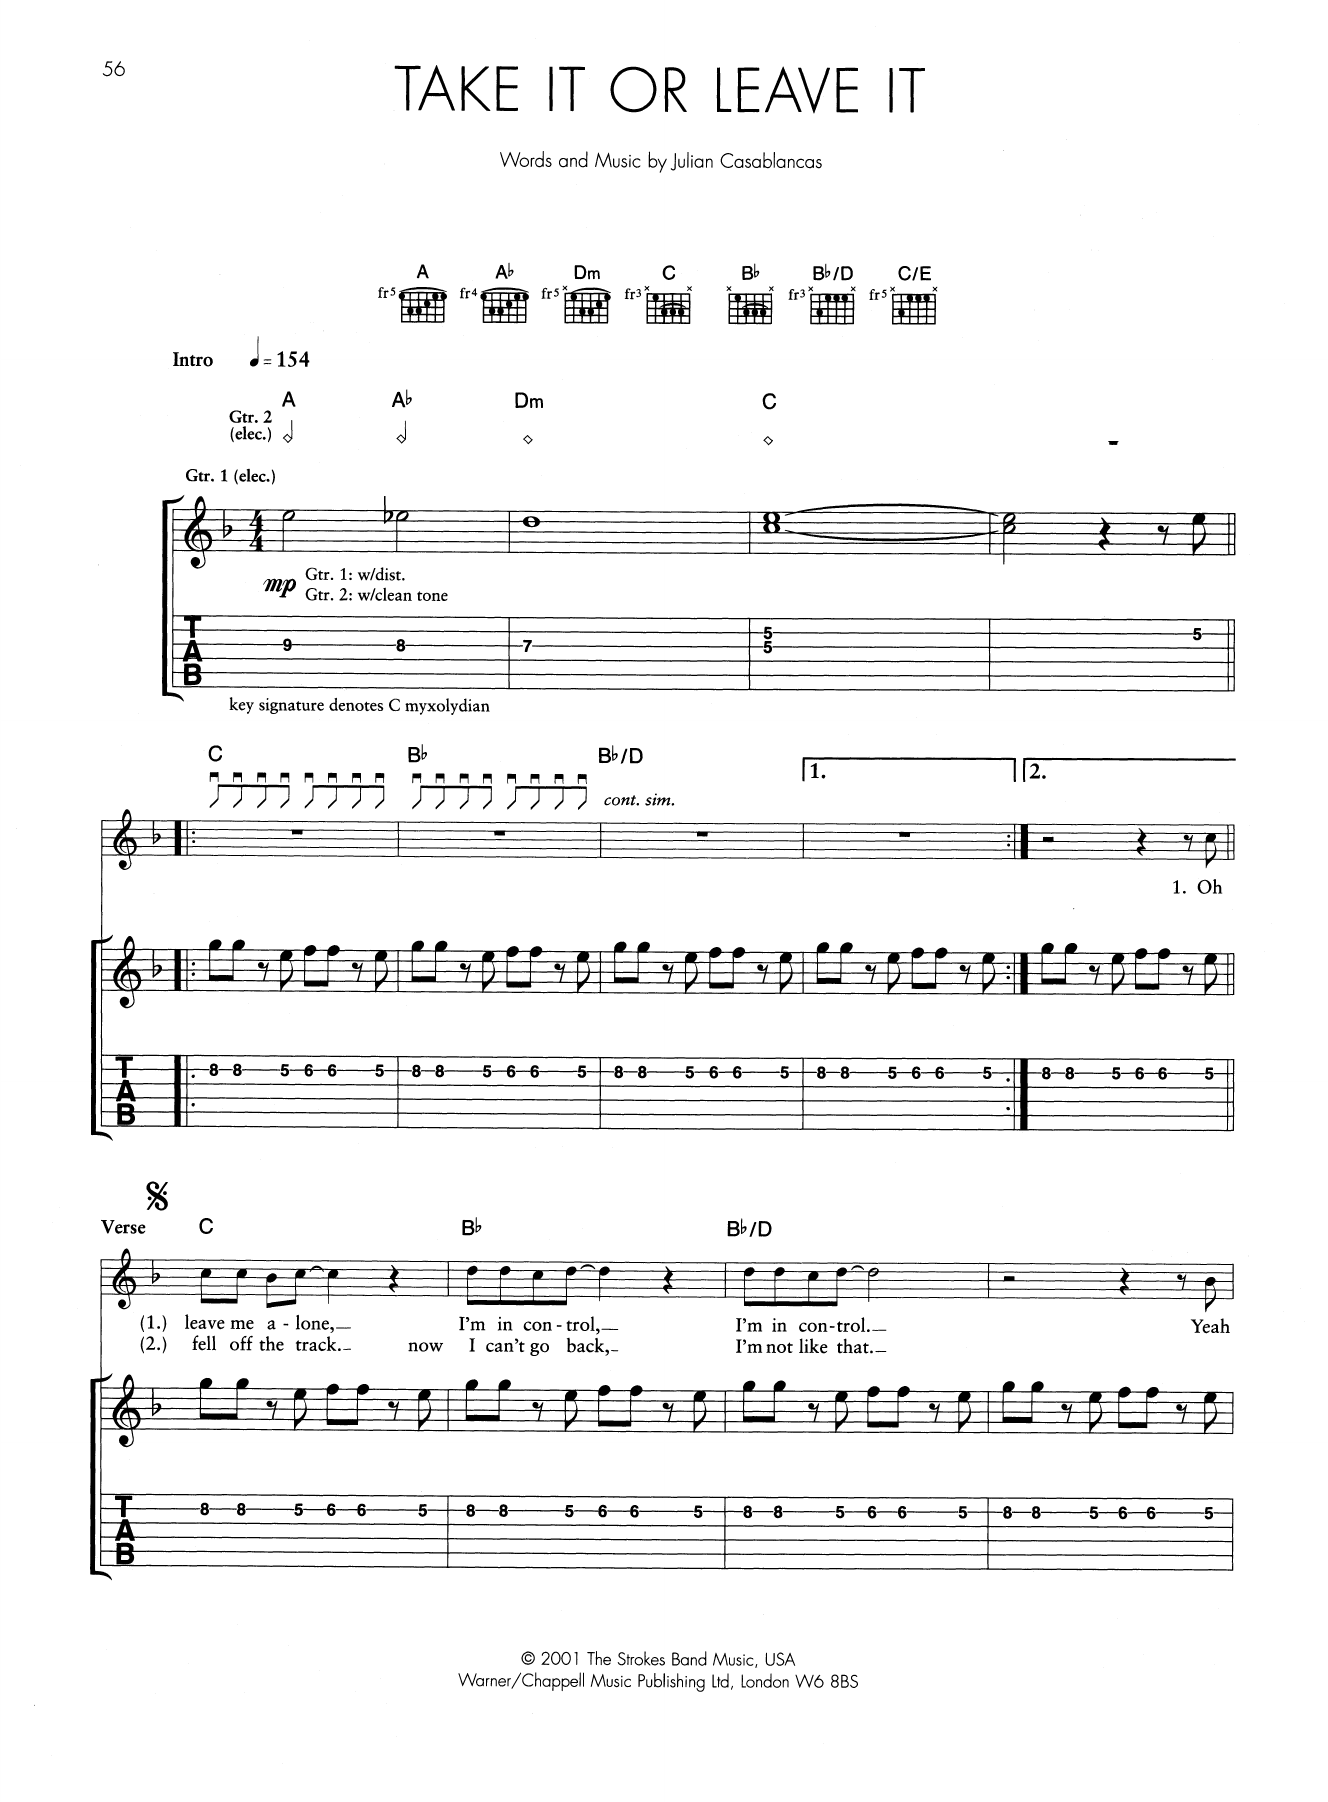 Take It Or Leave It Sheet Music | The Strokes | Guitar Tab